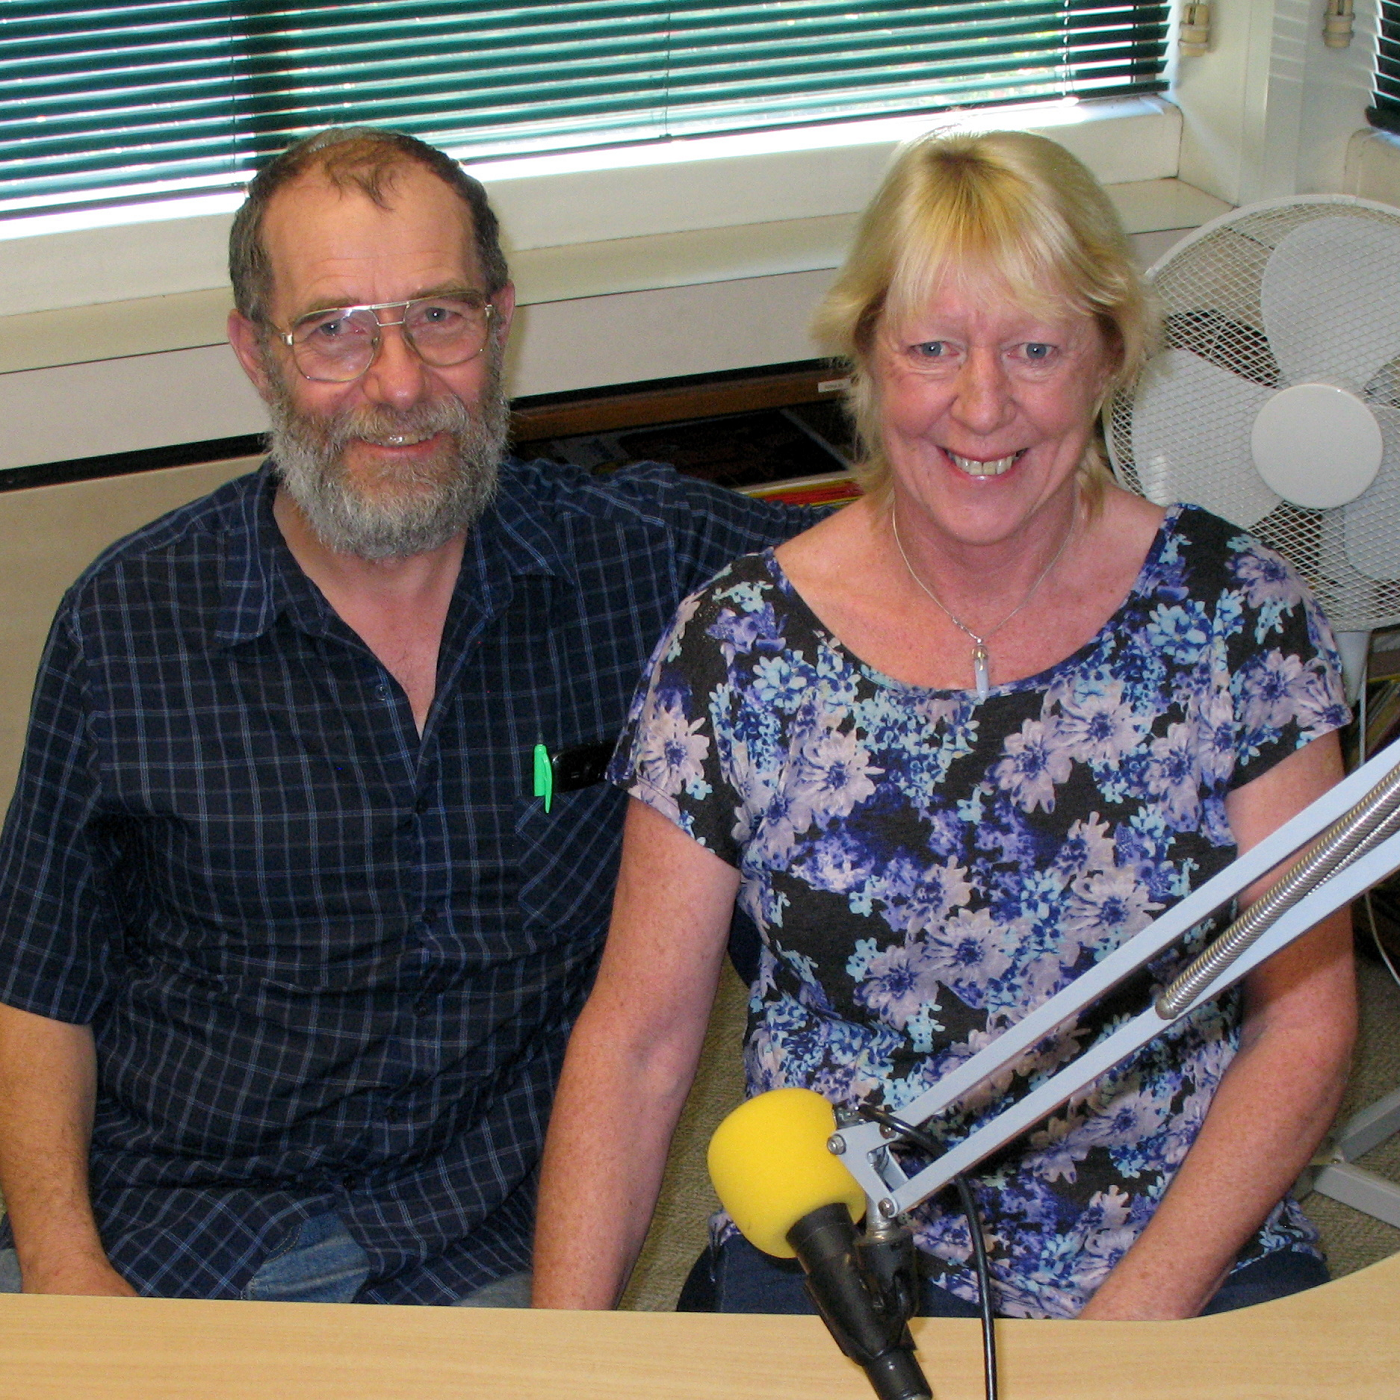 Spirituality on Air-27-11-2020  Anne and Tonni talk about Following Your Intuition